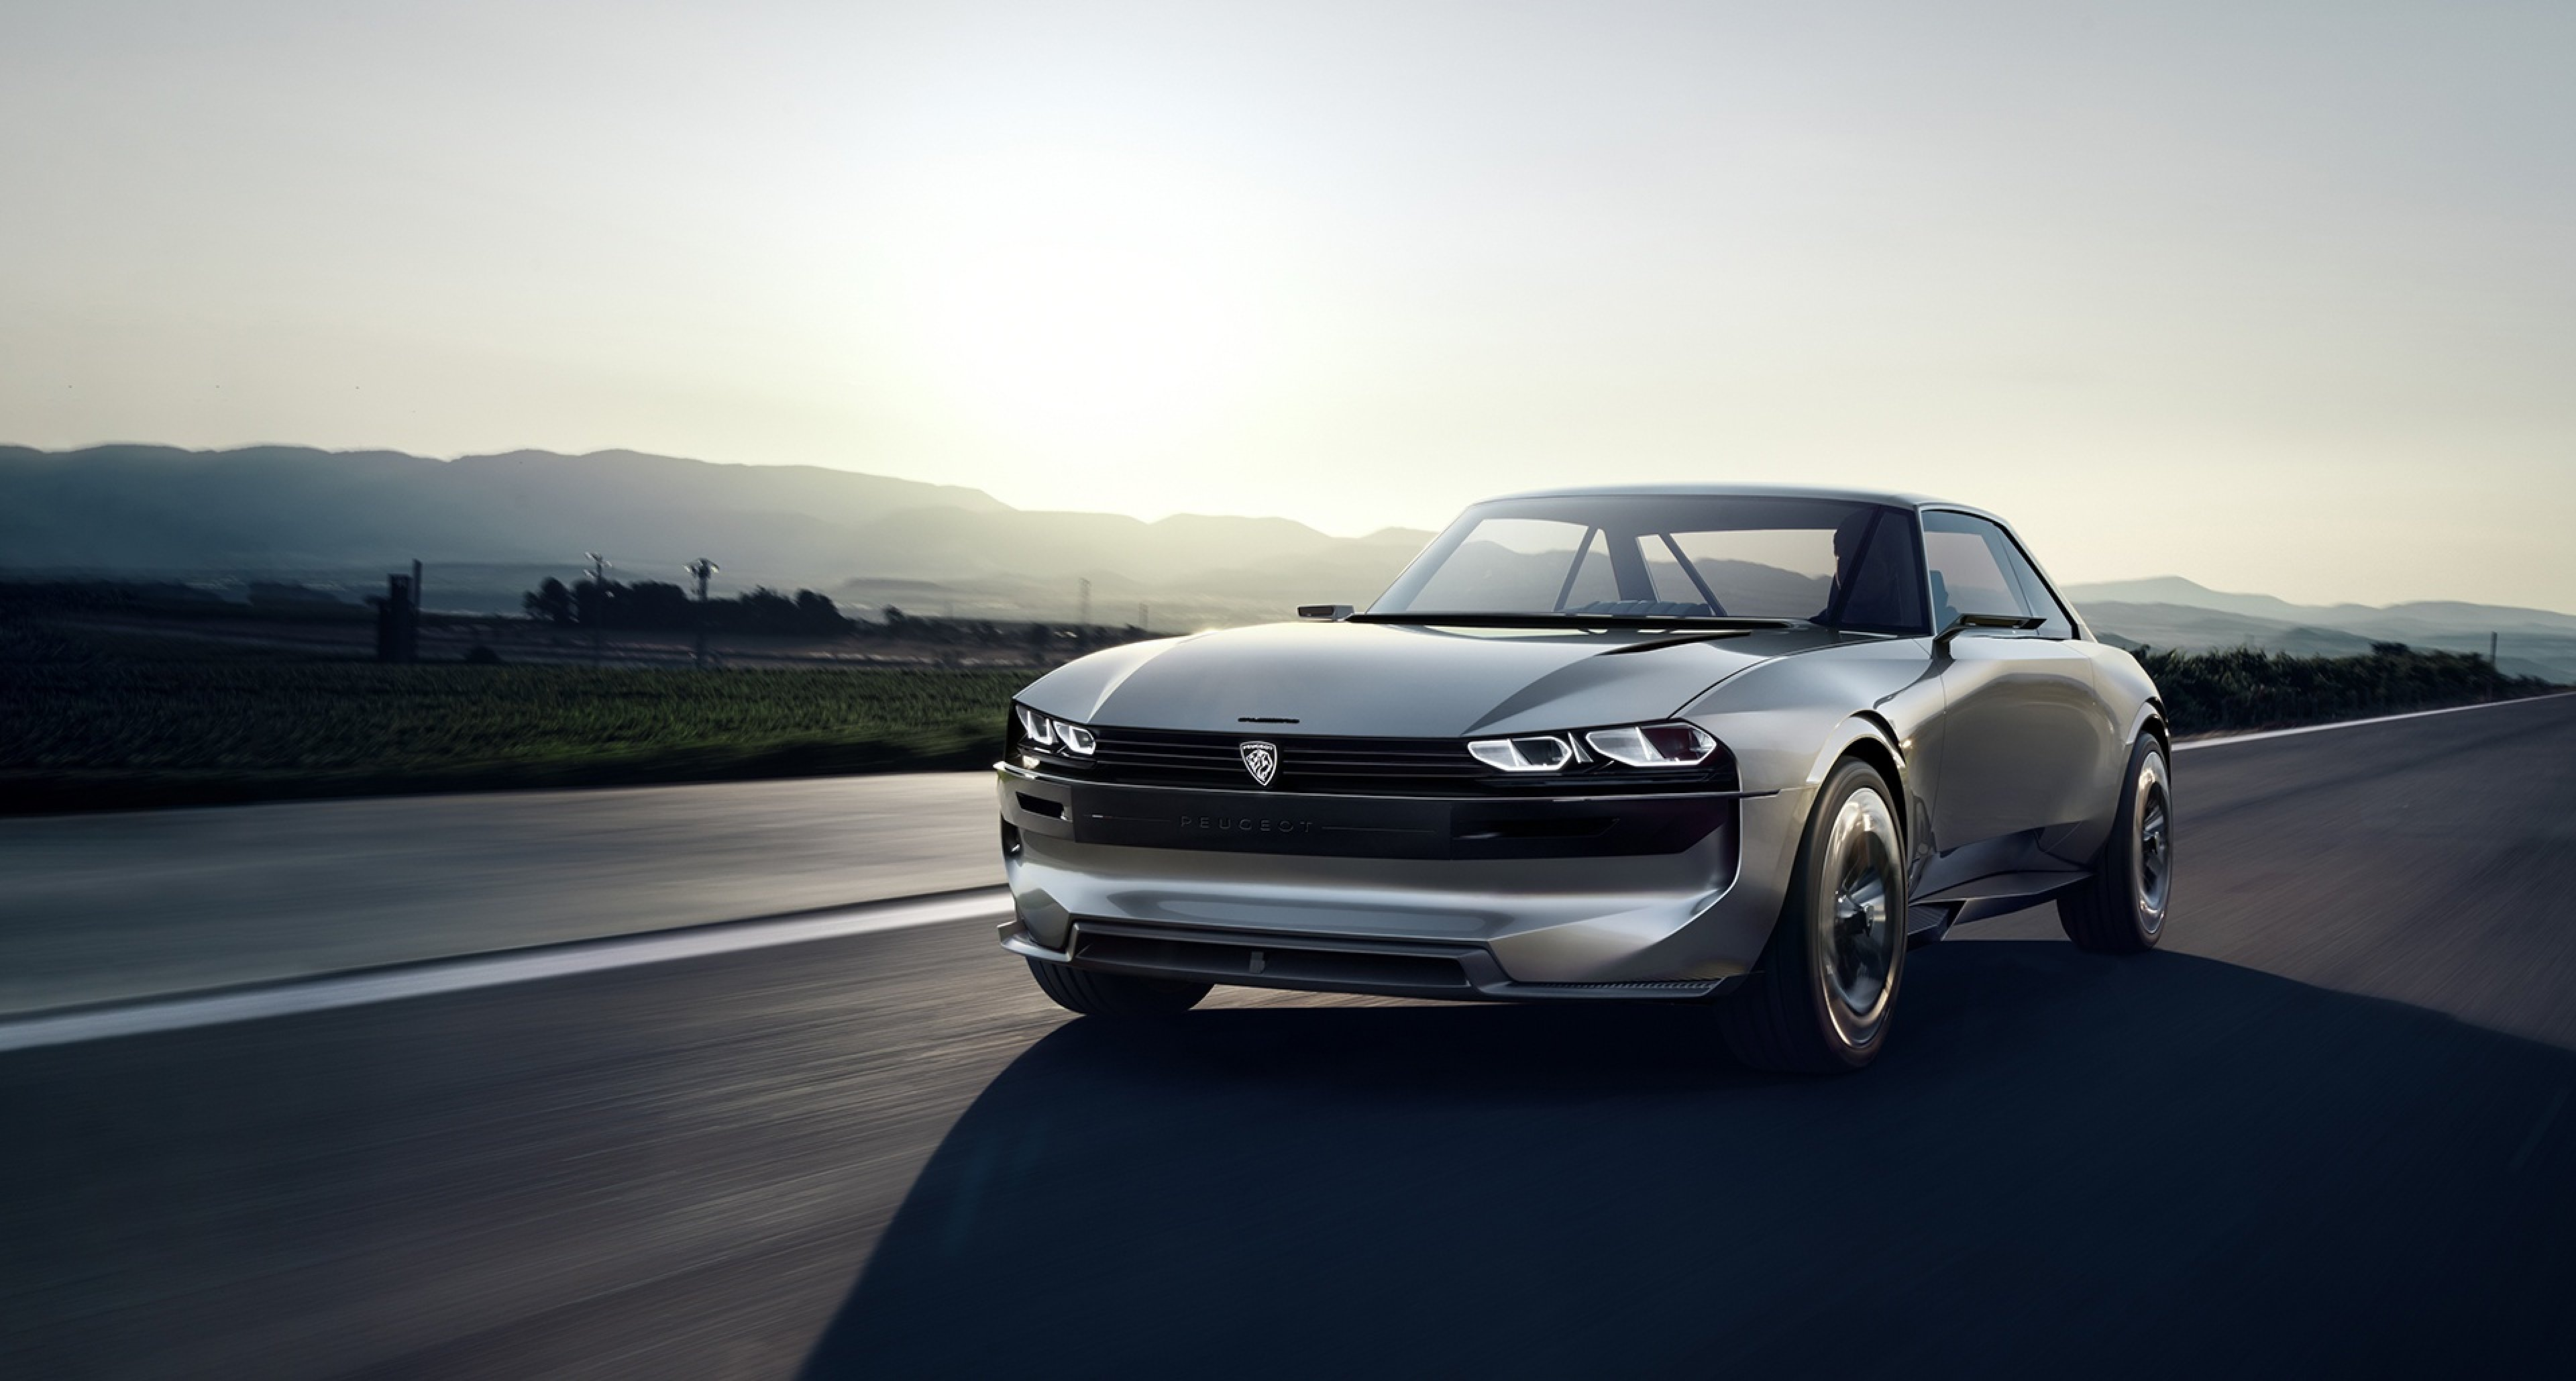 The Peugeot 504 reincarnated as the all-electric e-Legend